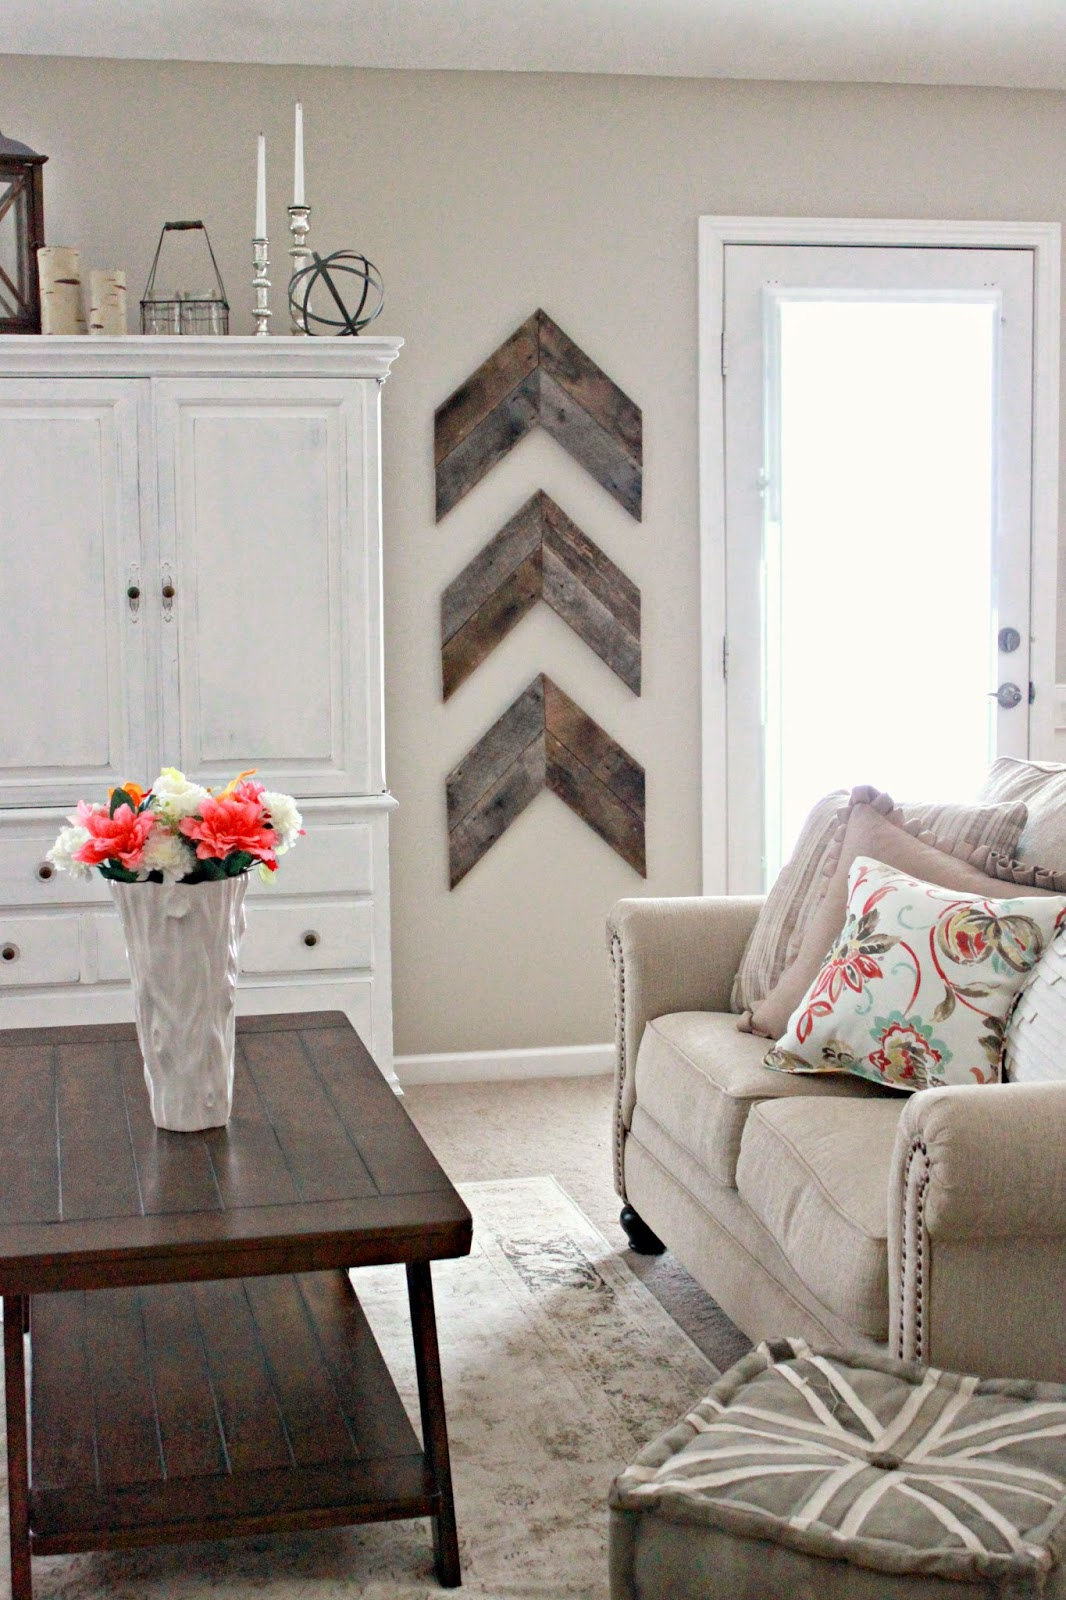 Living Room Wall Rustic Decor: 15 Striking Ways To Decorate With Arrows